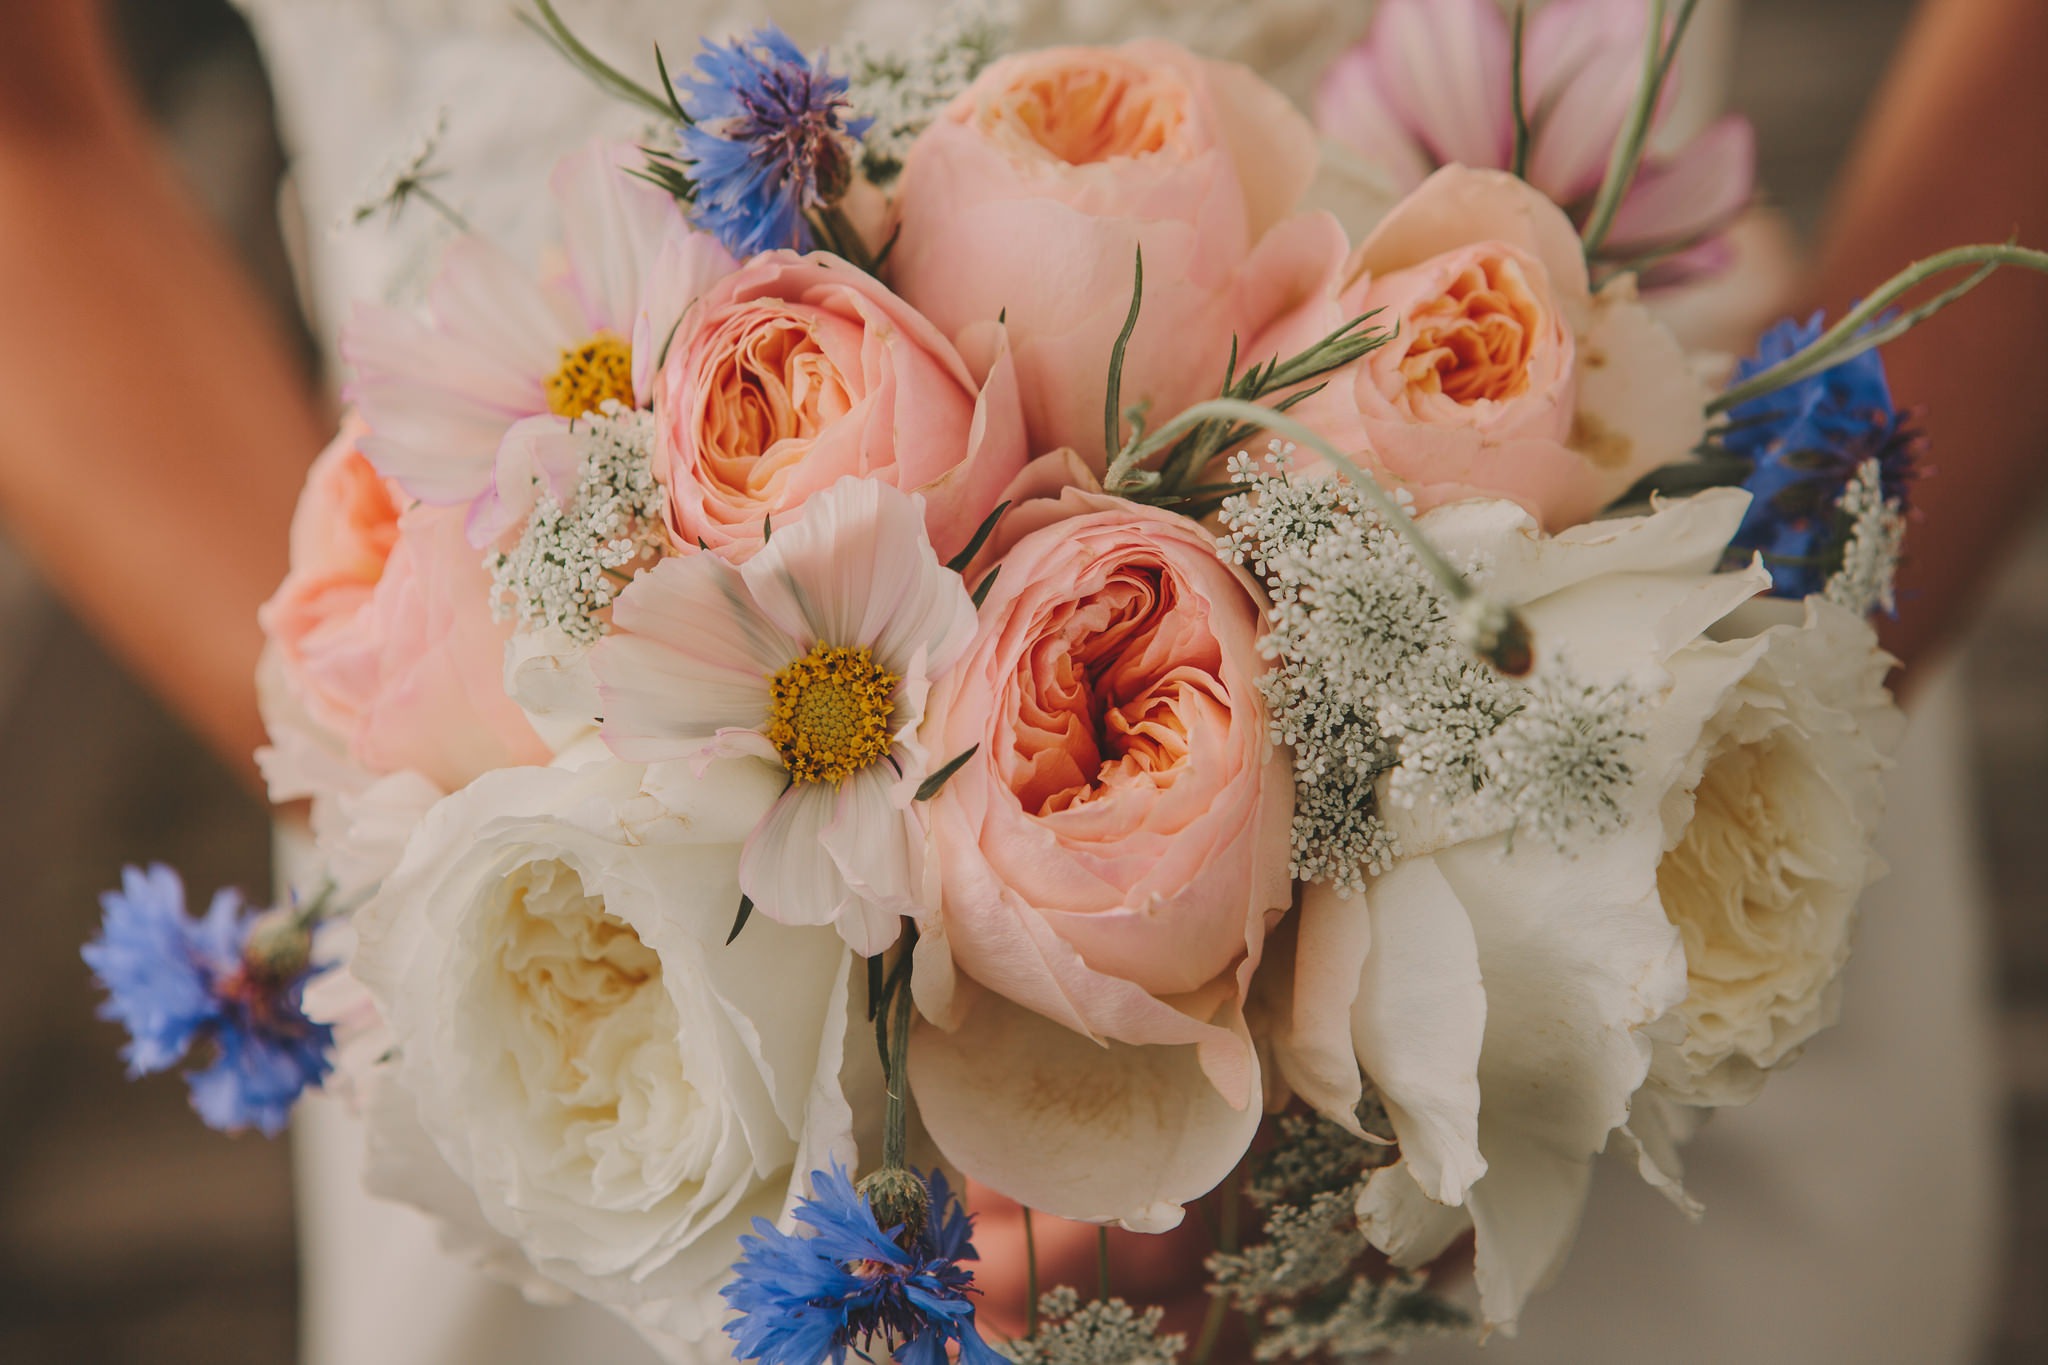 diy wedding bouquet basics from start to finish a practical diy wedding bouquet basics from start to finish a practical wedding we re your wedding planner wedding ideas for brides bridesmaids grooms